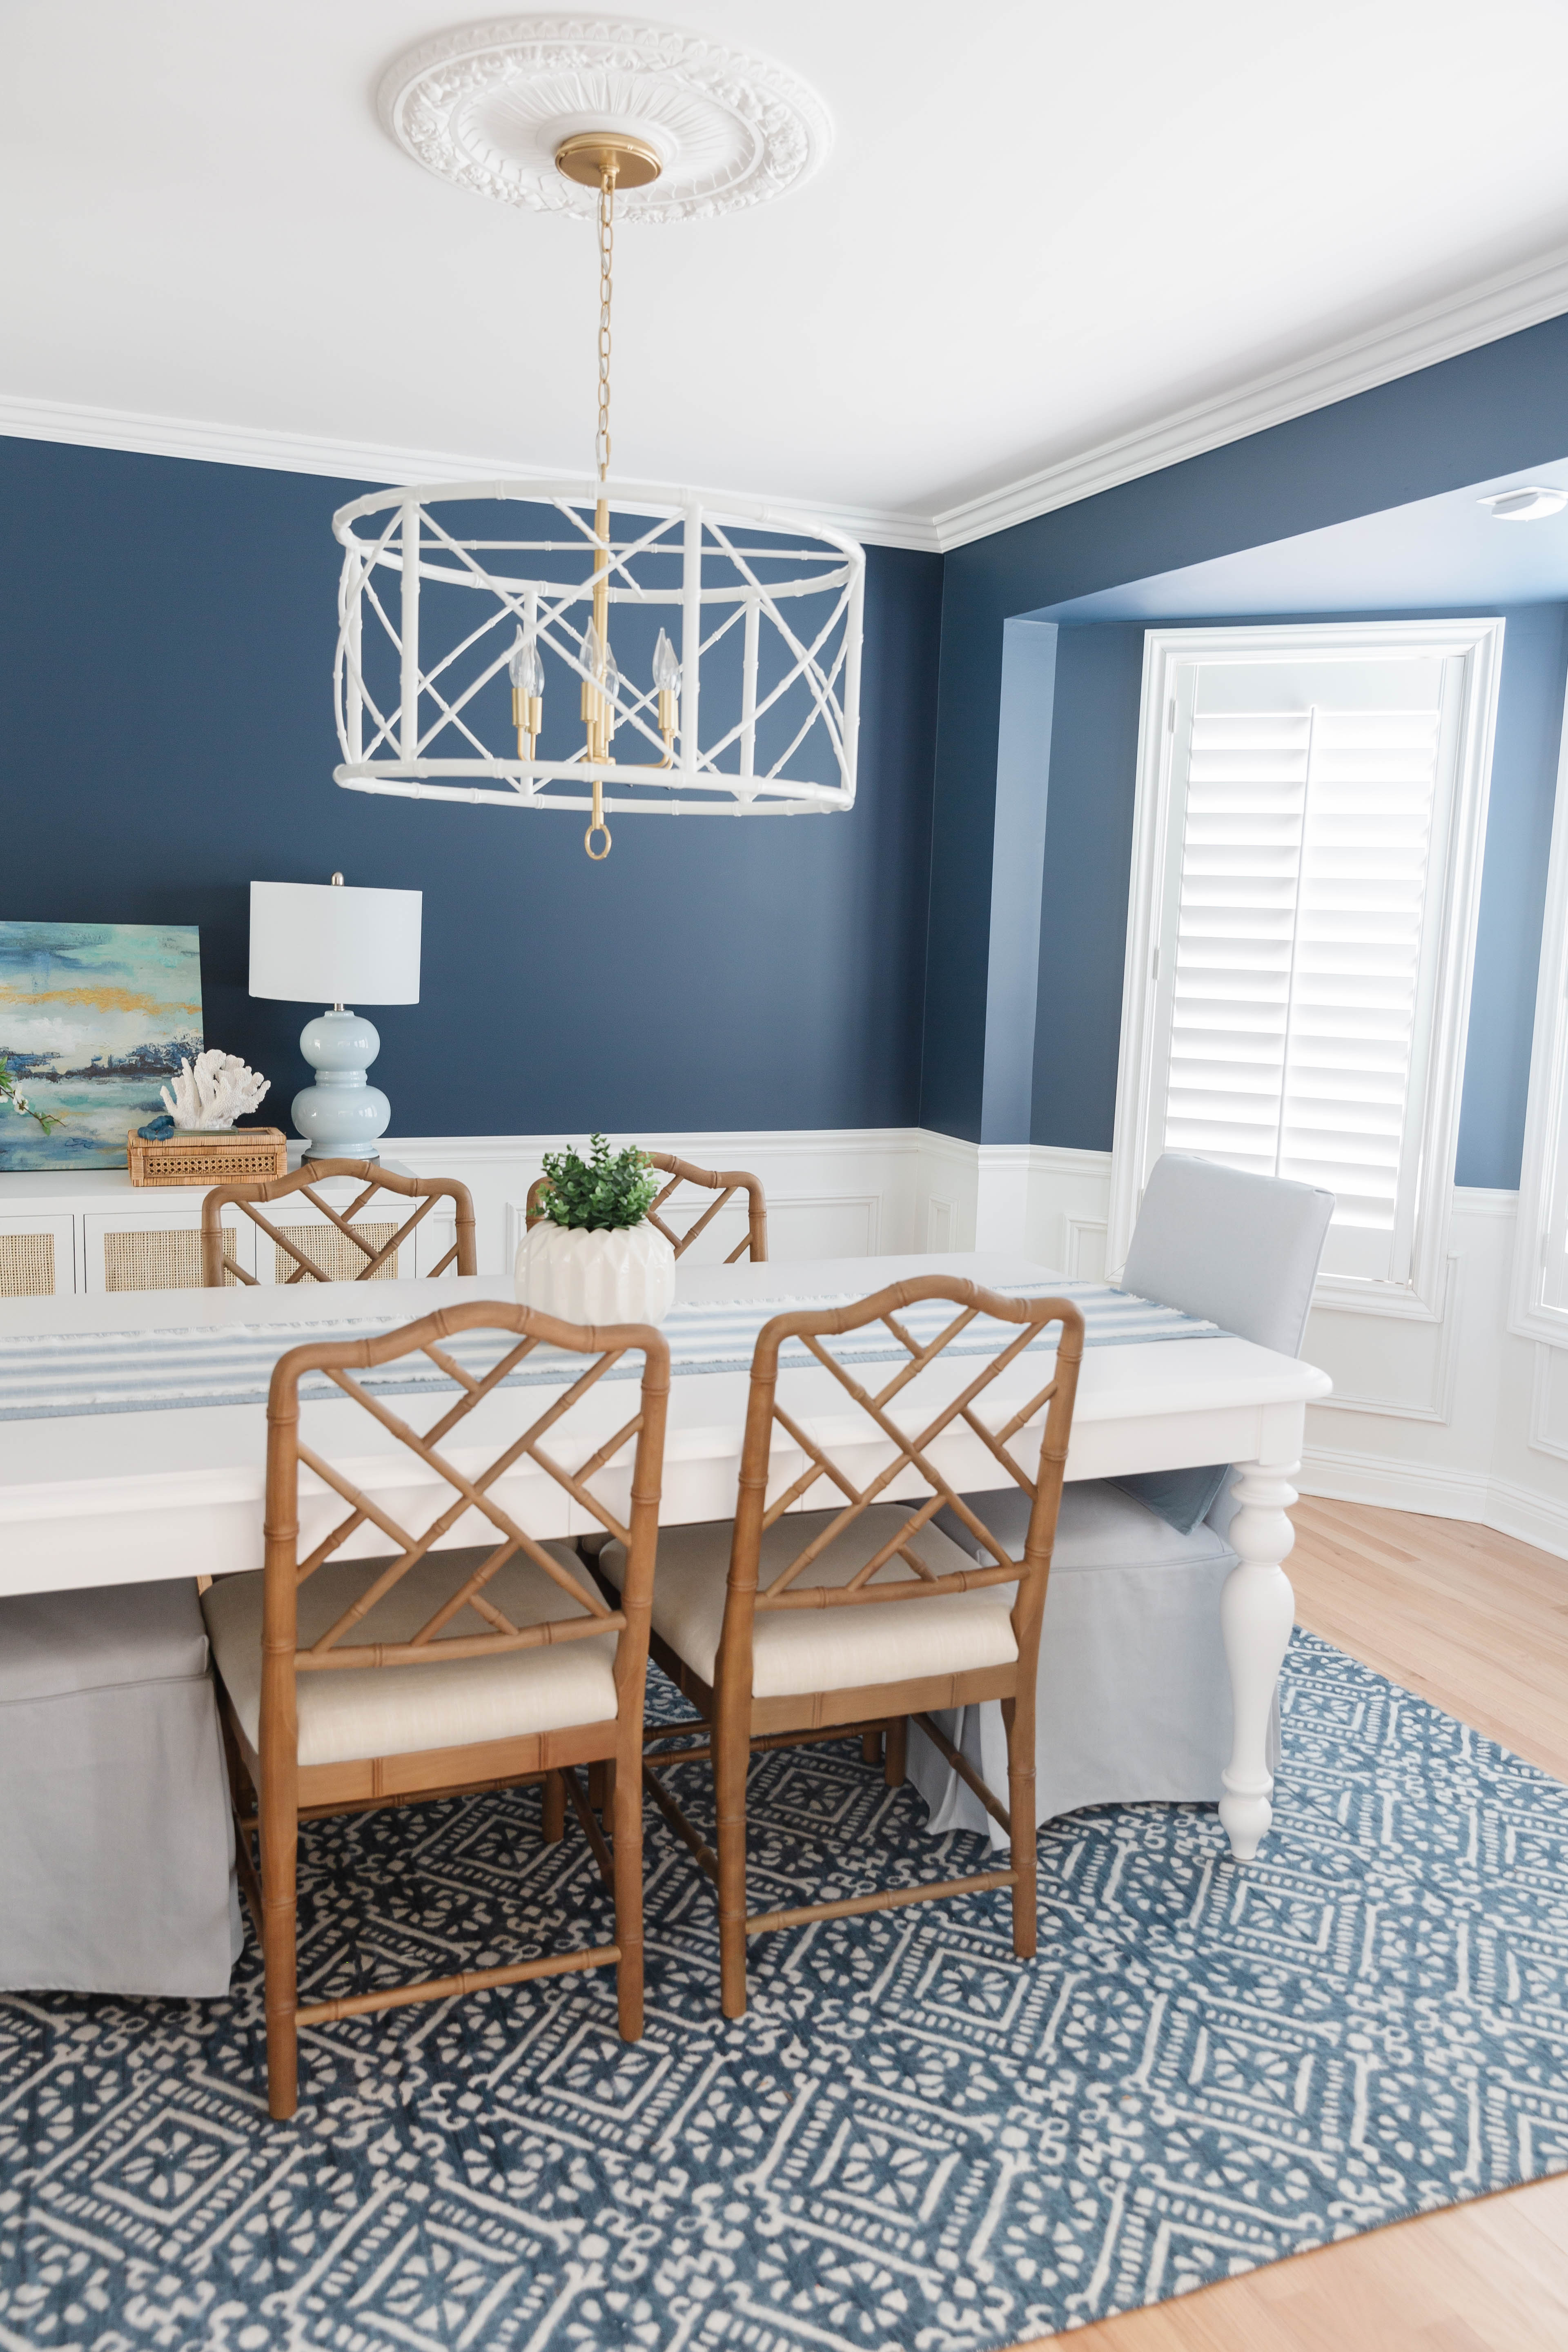 Navy Dining Room - Hale Navy Dining Room - Navy Blue Dining Room with Wainscoting - Blue Dining Room Chairs - Navy and White Dining Room - Navy Dining Room Chairs - Navy Blue Dining Room Set - Navy Dining Room Rug - Benjamin Moore Hale Navy Dining Room - Coastal Dining Room Decoration Ideas - Modern Coastal Dining Room